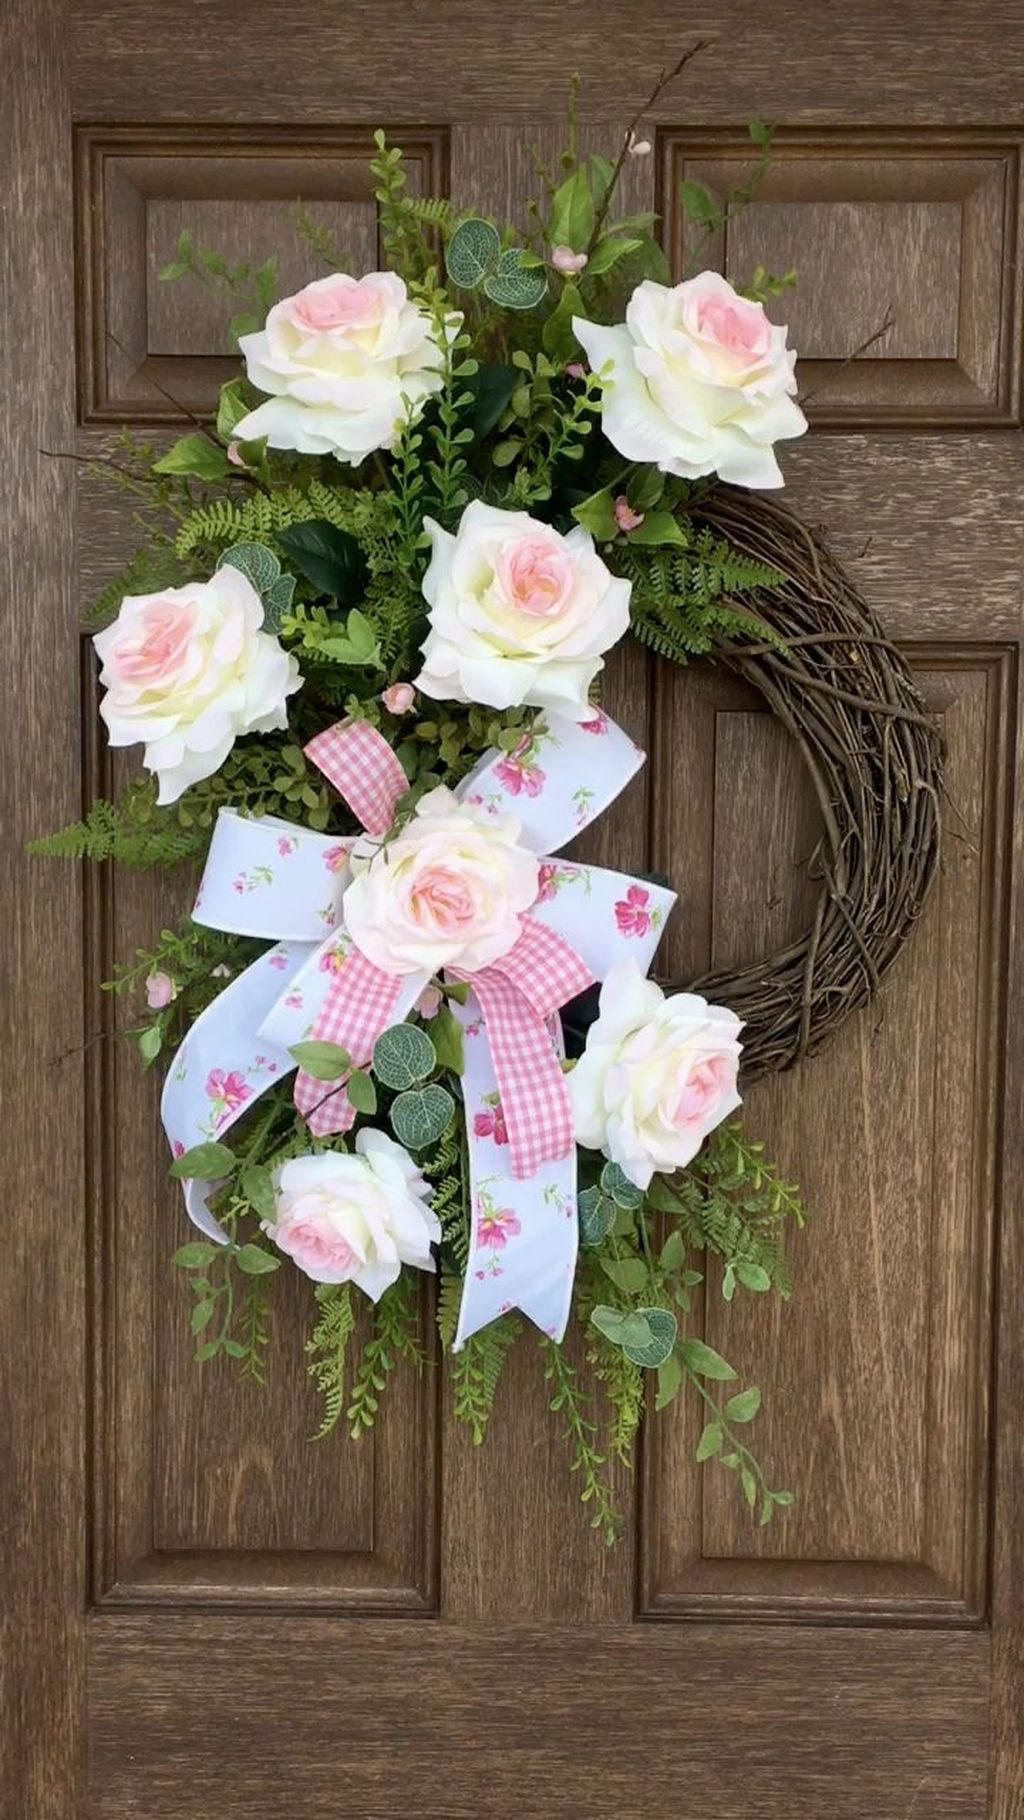 Awesome Spring Wreath Ideas For Front Door Decor 25